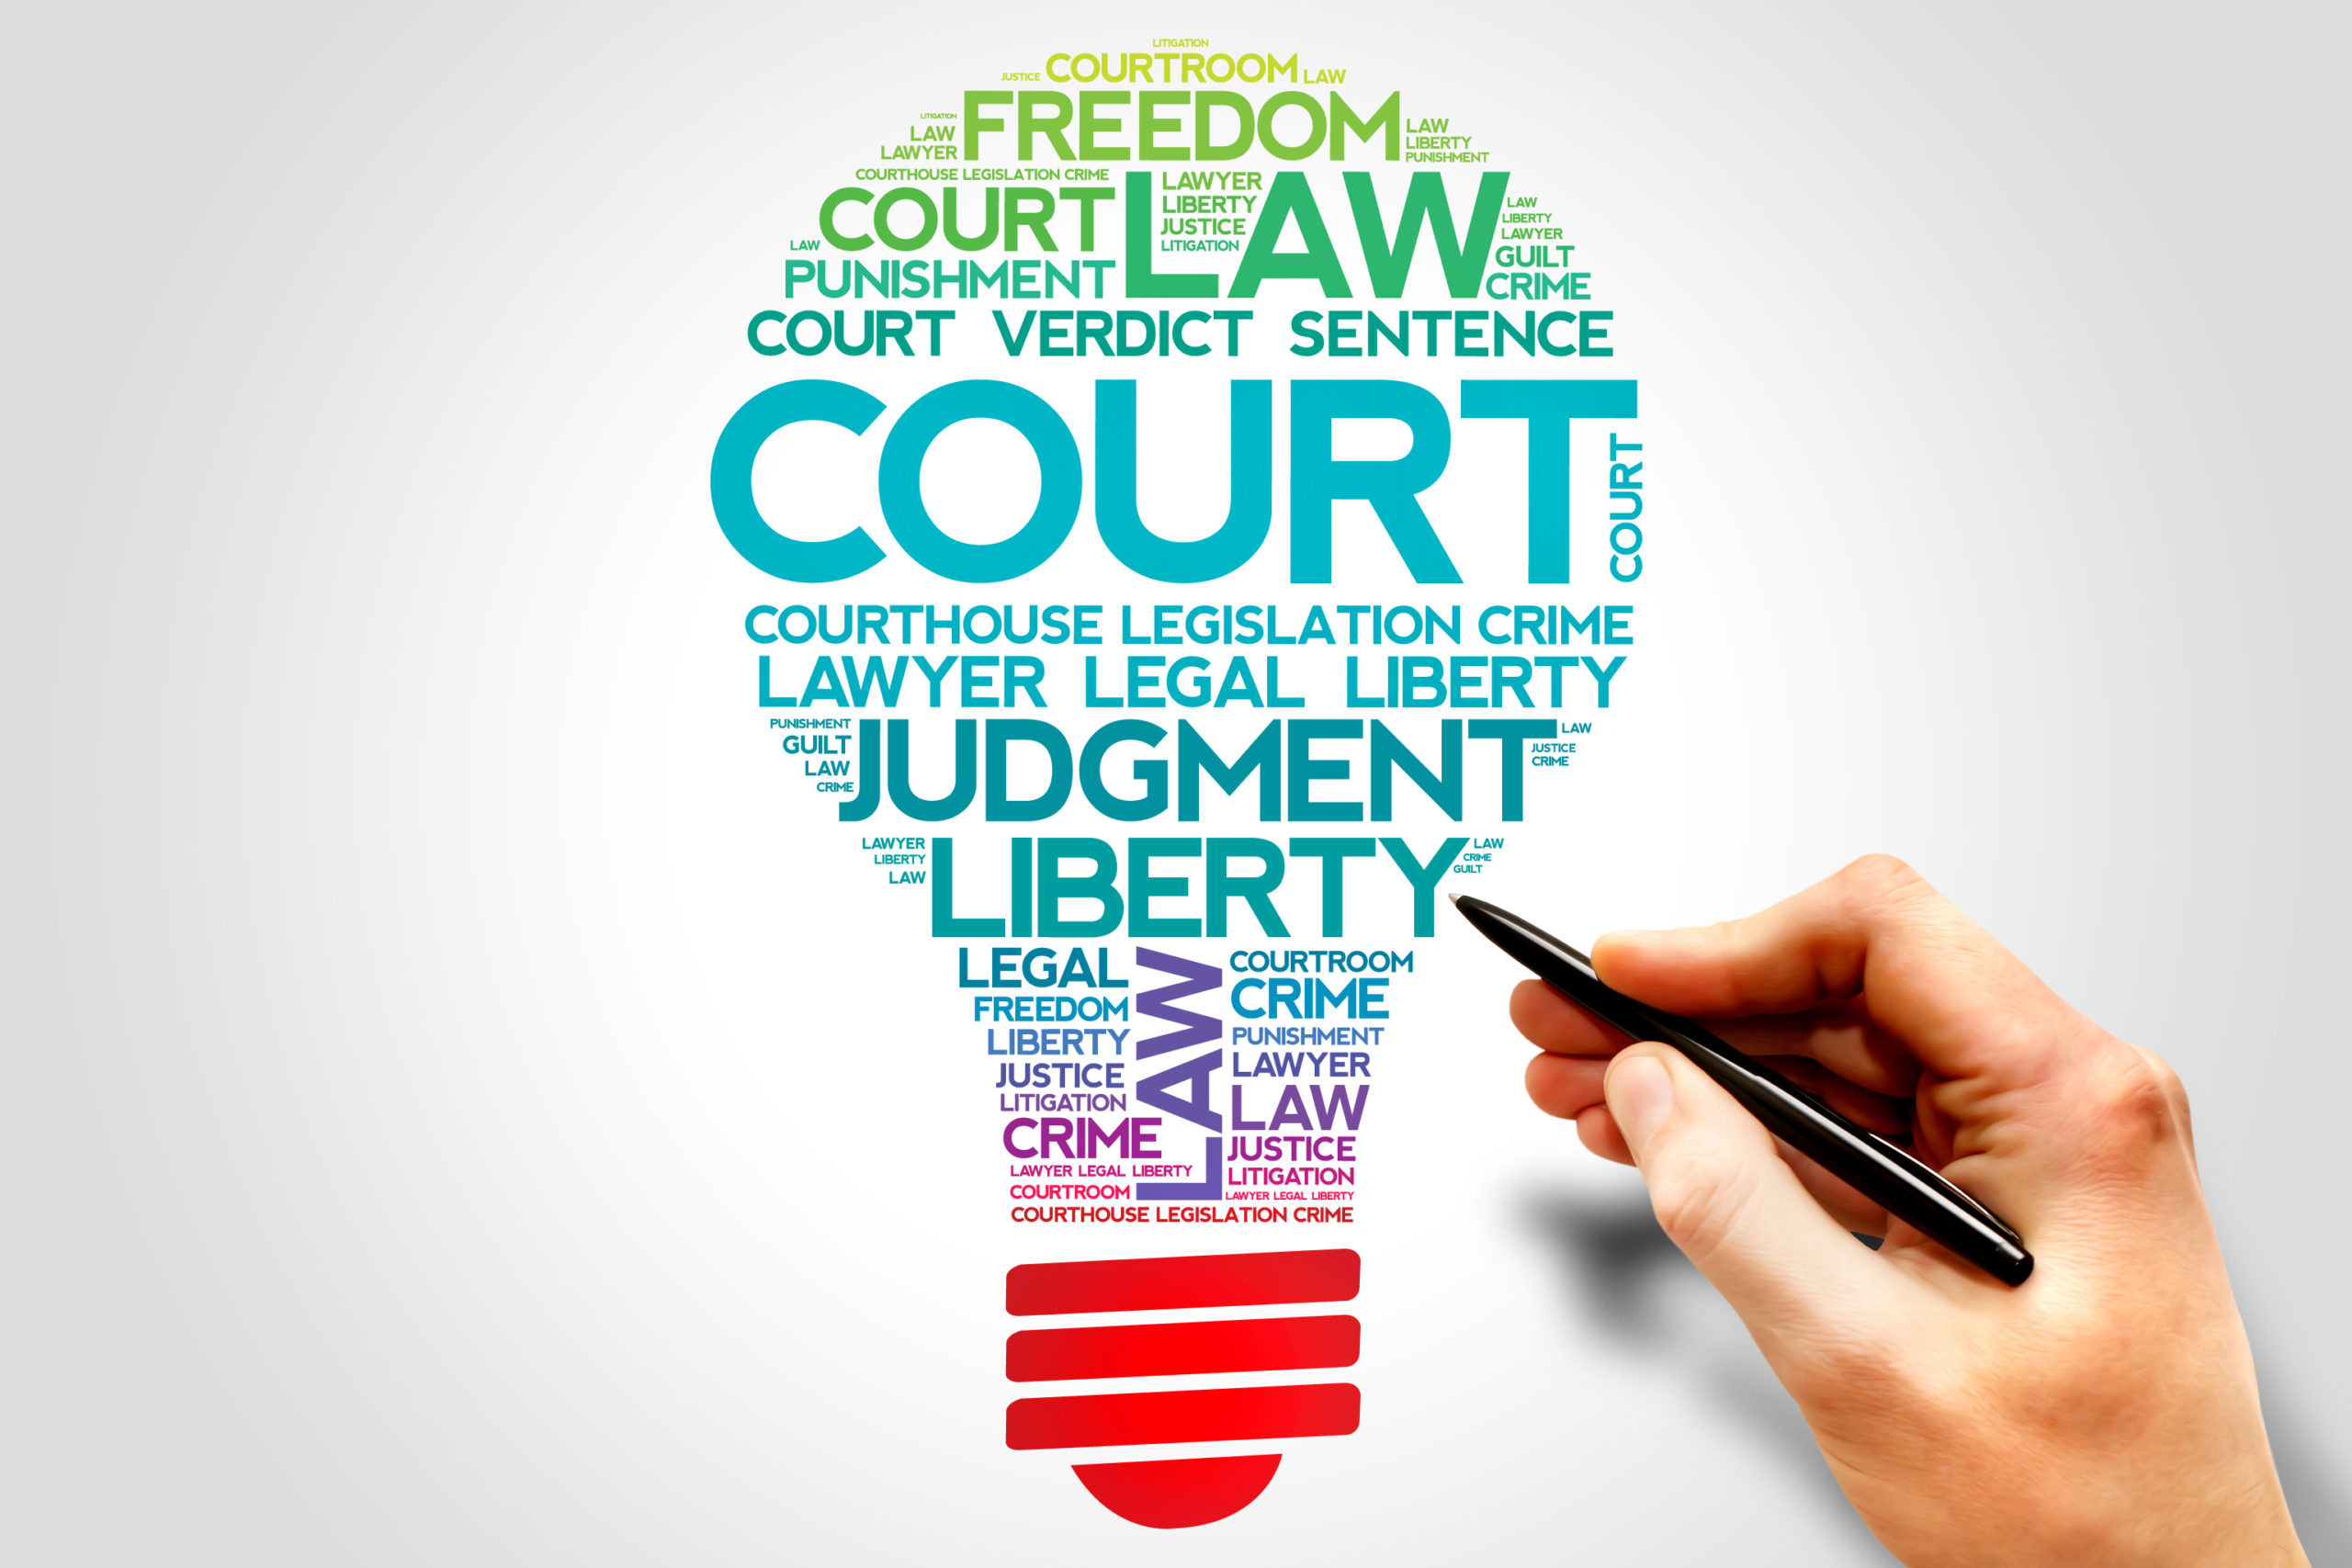 A hand holding a pen next to a colorful set of words like COURT, LAW, JUDGEMENT, LIBERTY and other related terms, arranged in the shape of a lightbulb, posing the question, What is a personal injury lawyer in Philadelphia?